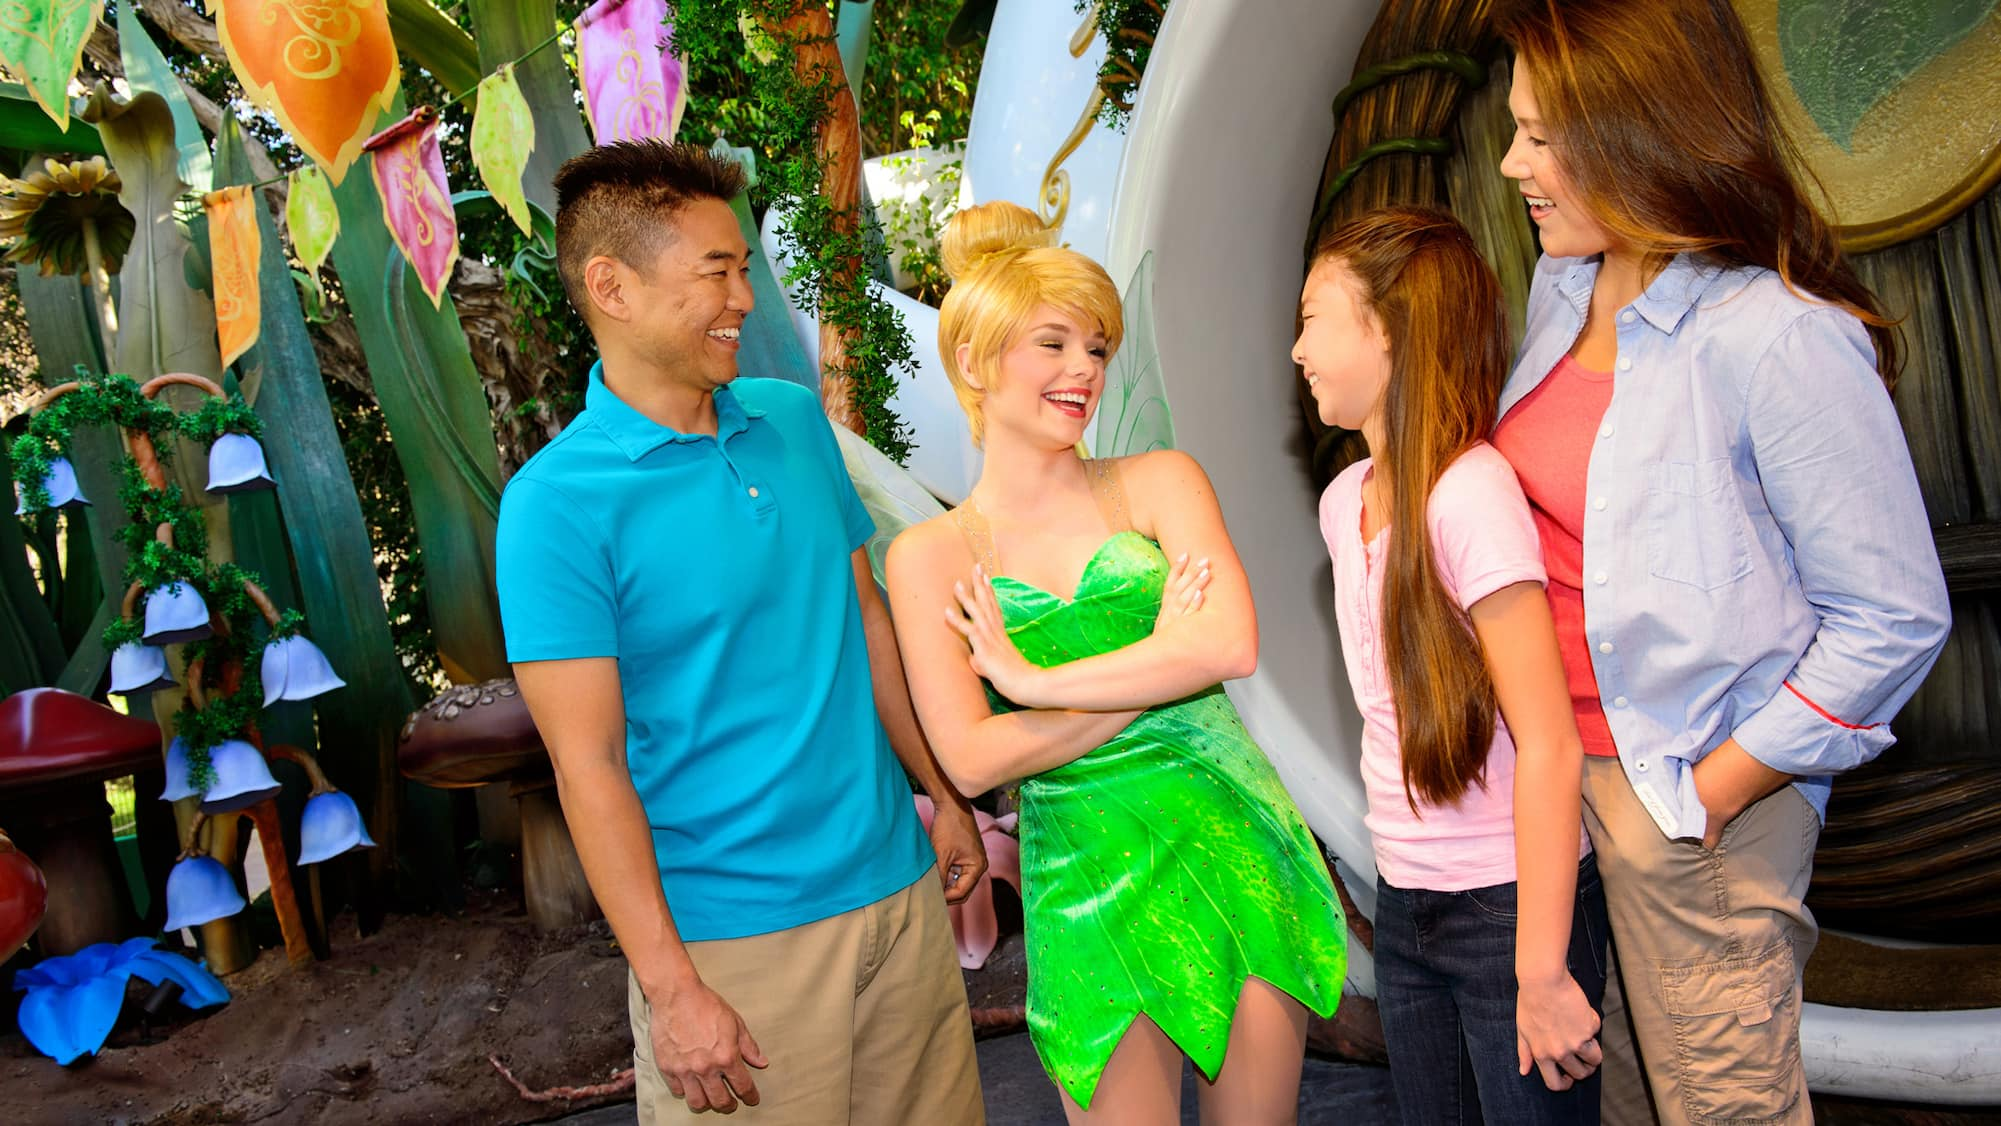 Tinker Bell at Pixie Hollow